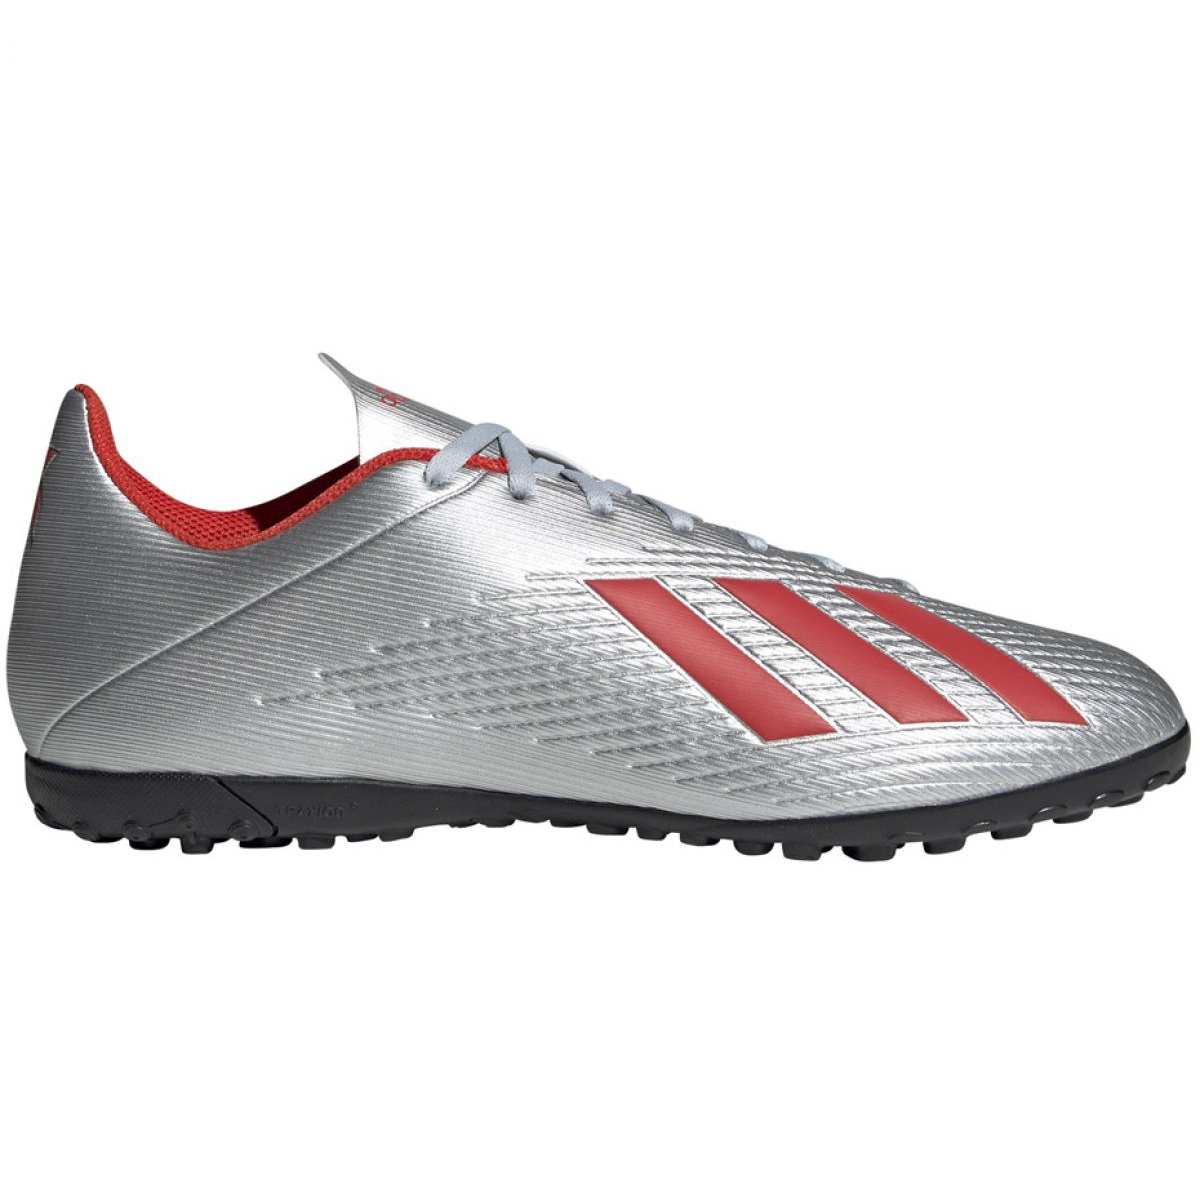 sports shoes 2f29e 3dcd1 Scarpe da calcio adidas X 19.4 Tf M F35344